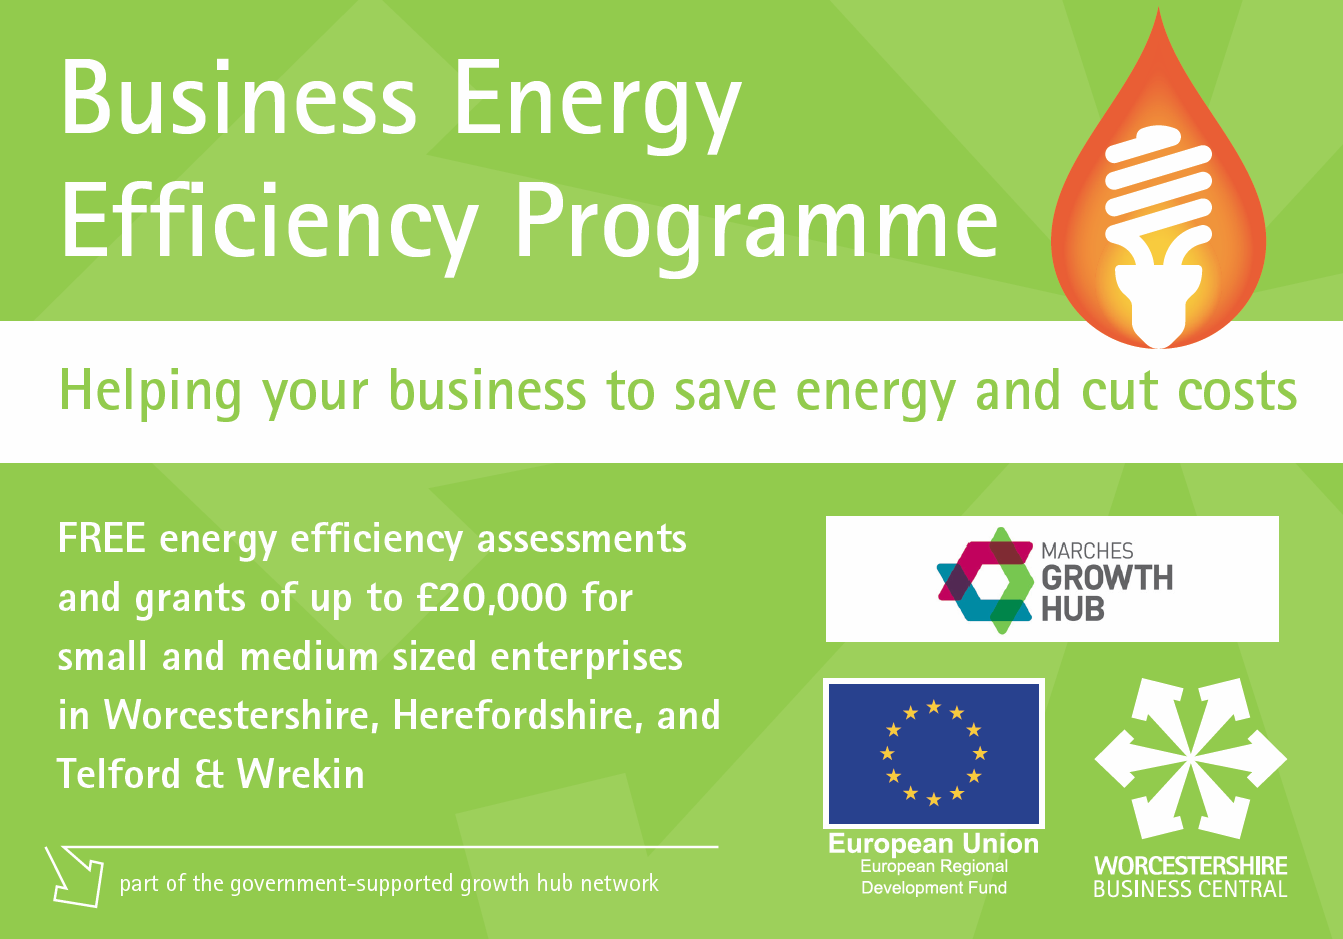 Funding Available To Help Businesses Save Energy And Cut